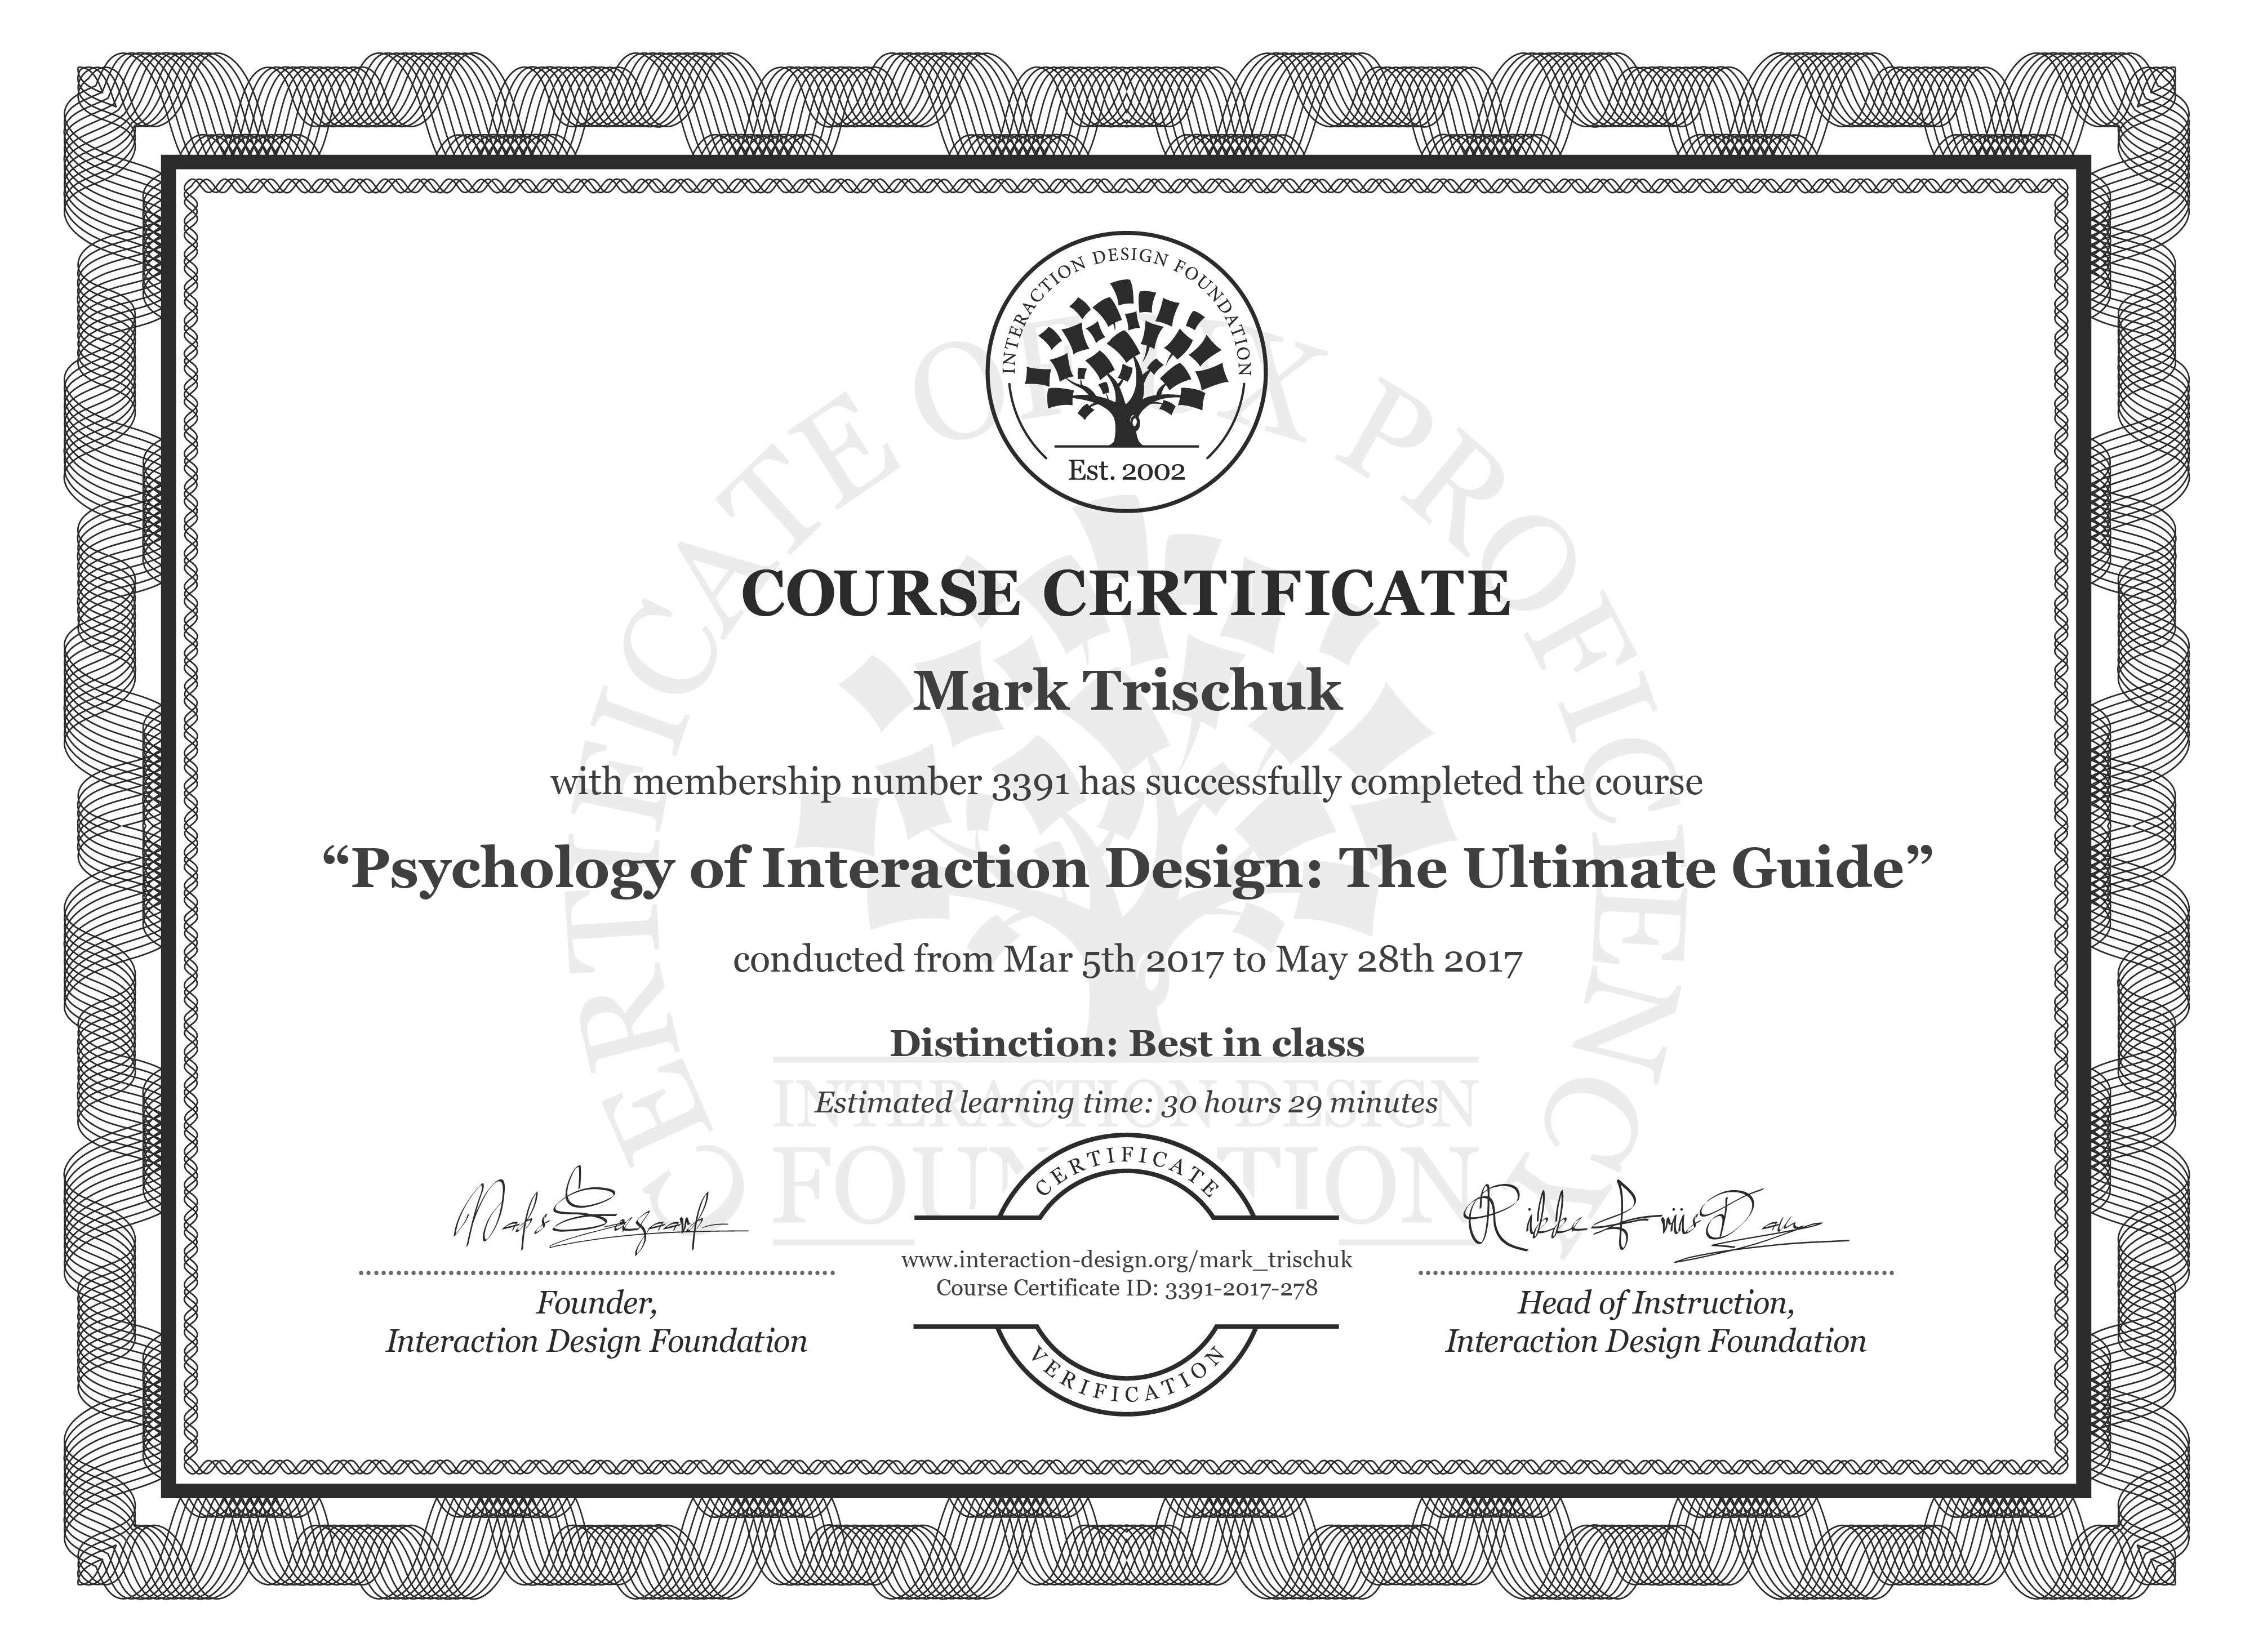 Mark Trischuk's Course Certificate: Psychology of Interaction Design: The Ultimate Guide